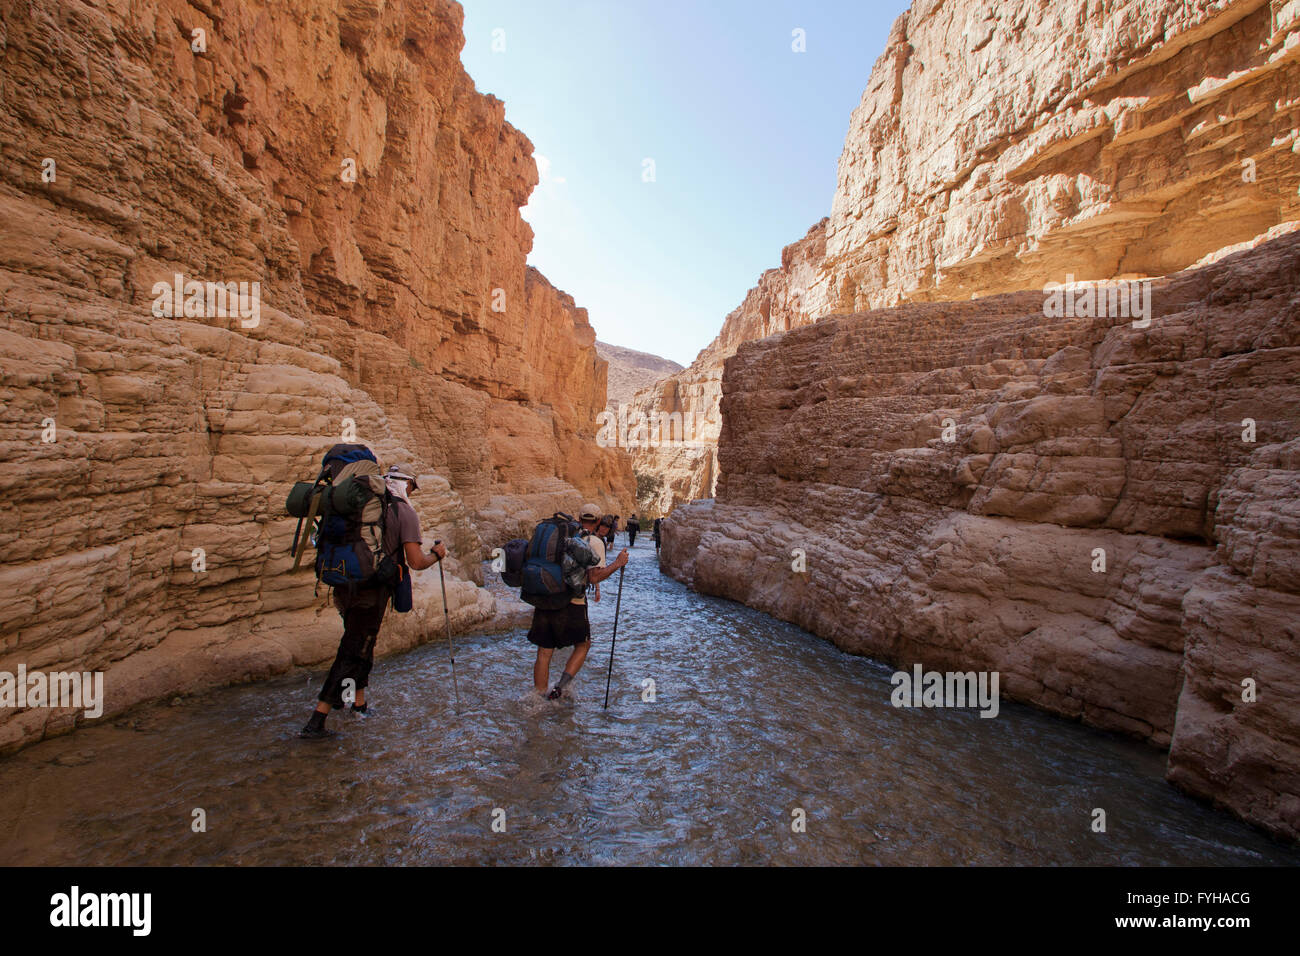 Wadi Zered (Wadi Hassa or Hasa) in western Jordan. A sand stone canyon with frash running water - Stock Image